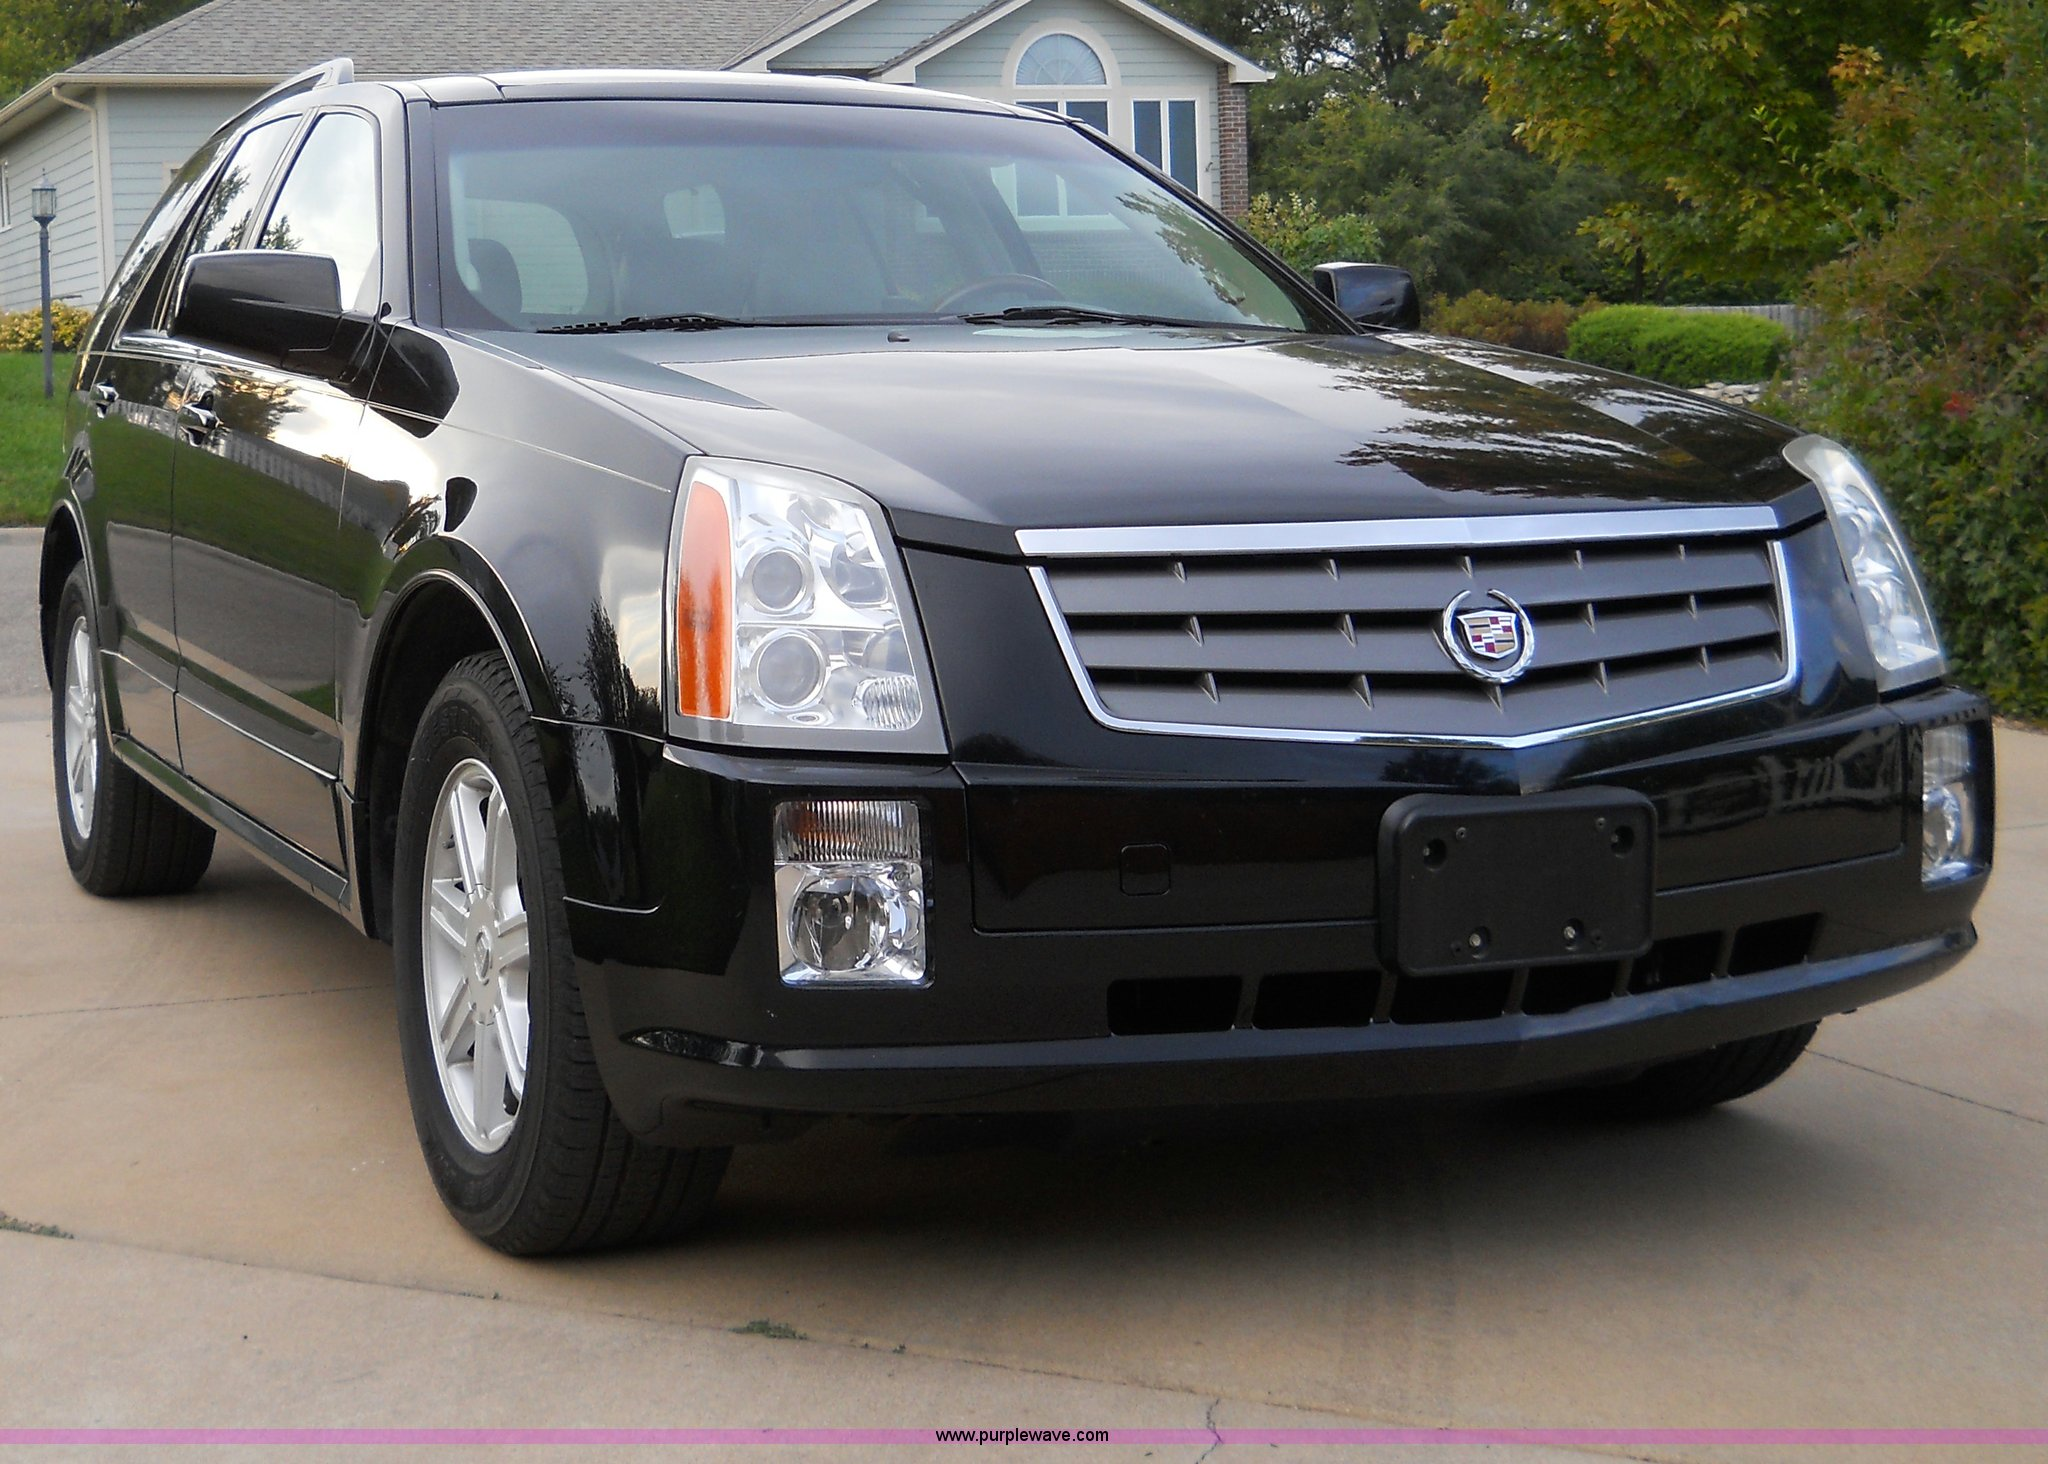 2004 cadillac srx suv item b1870 sold wednesday april 3. Black Bedroom Furniture Sets. Home Design Ideas